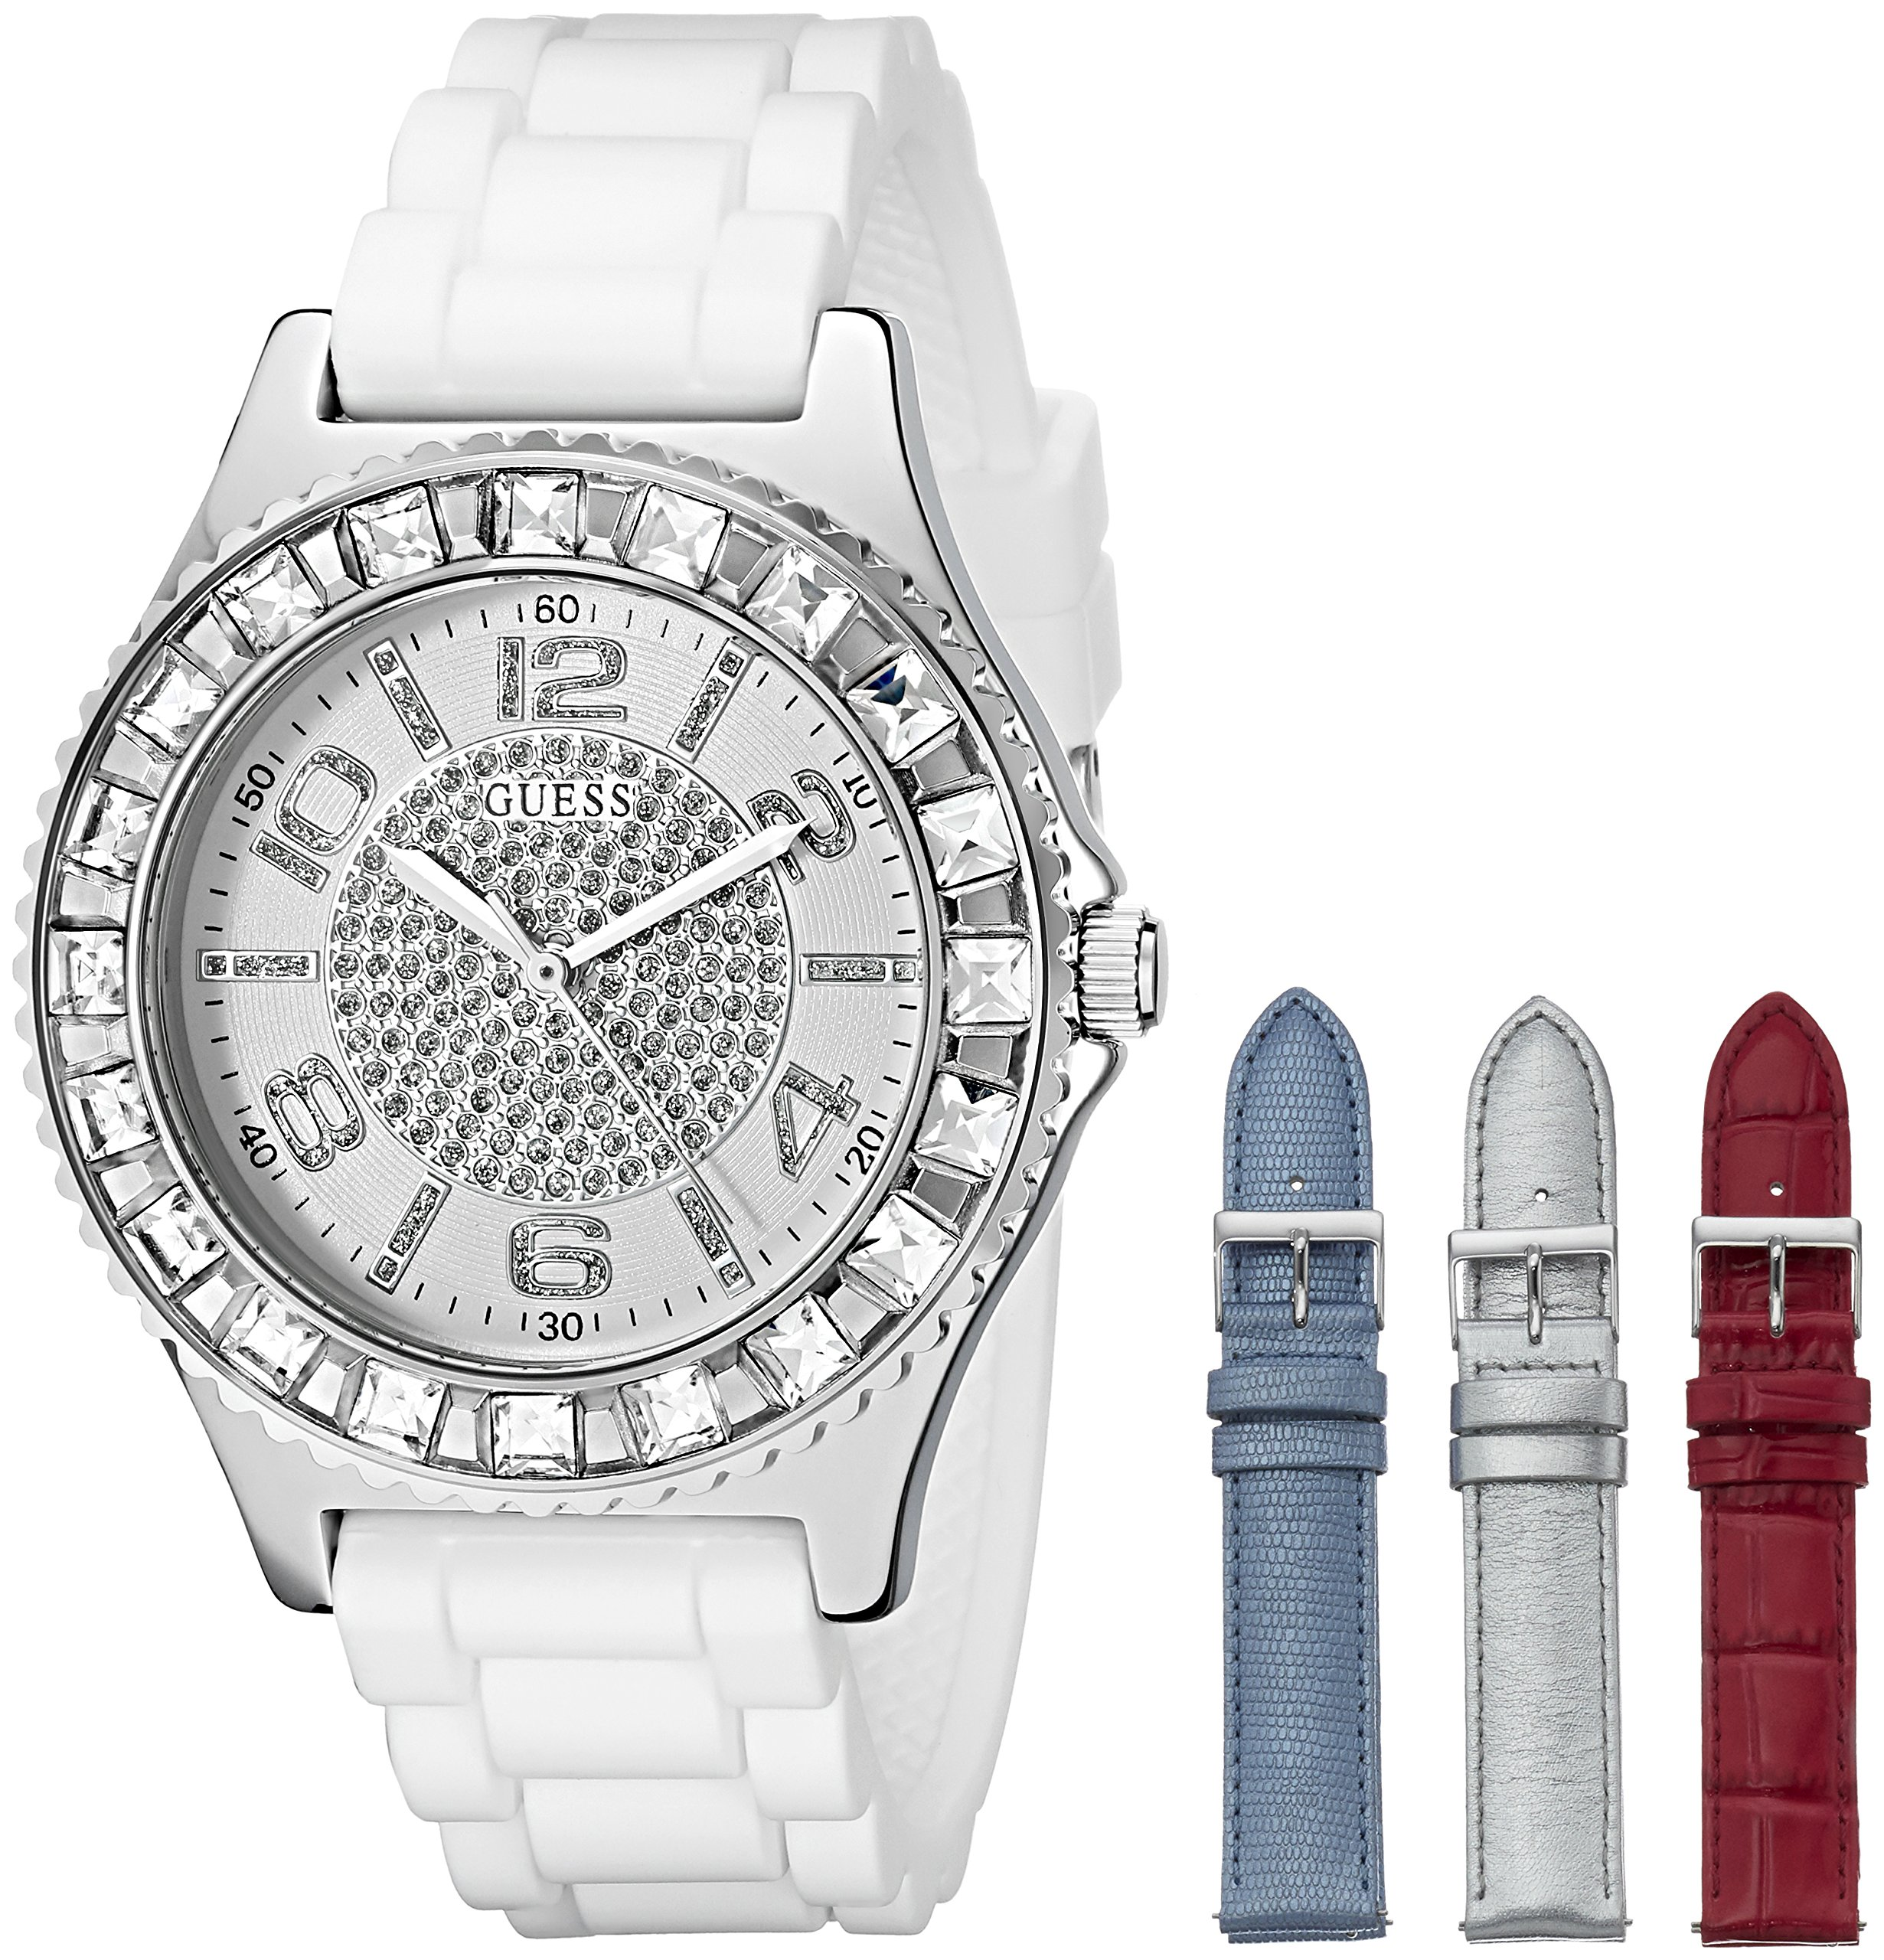 GUESS Women's U0714L1 Silver-Tone Watch Set with 4 Interchangeable Leather Straps Inside a Bonus Travel Case by GUESS